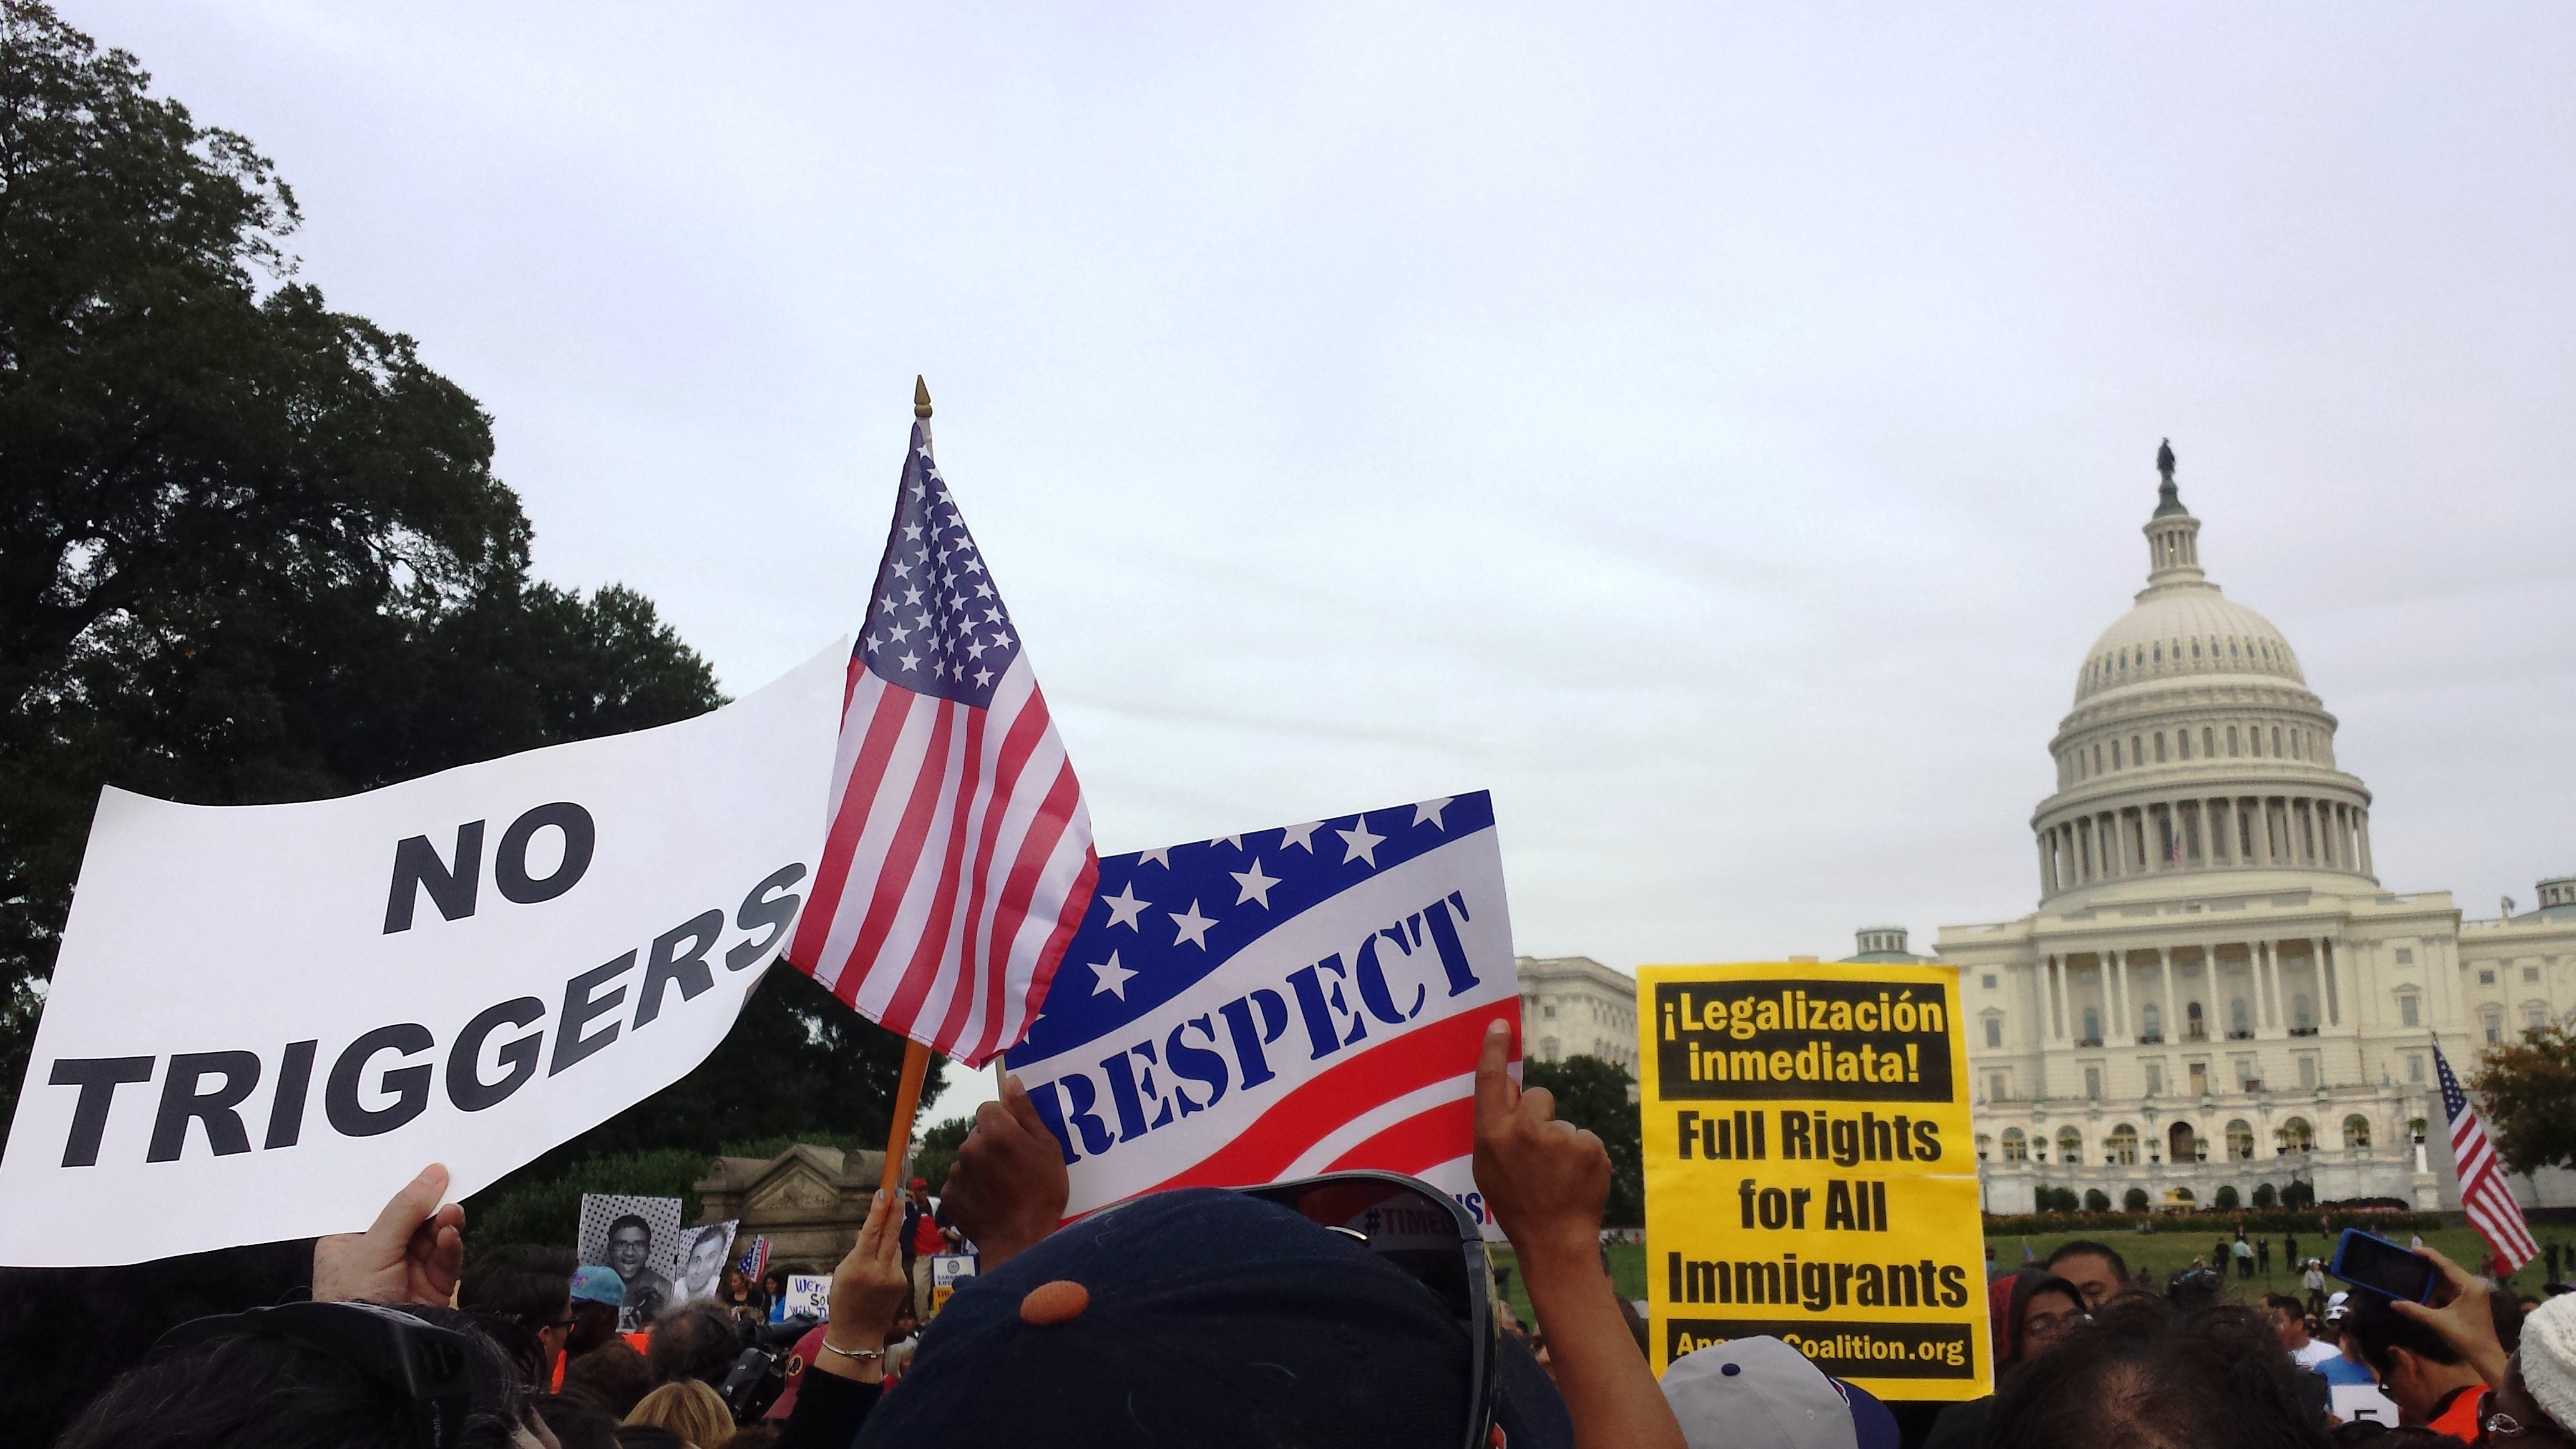 Immigrallage_rally.